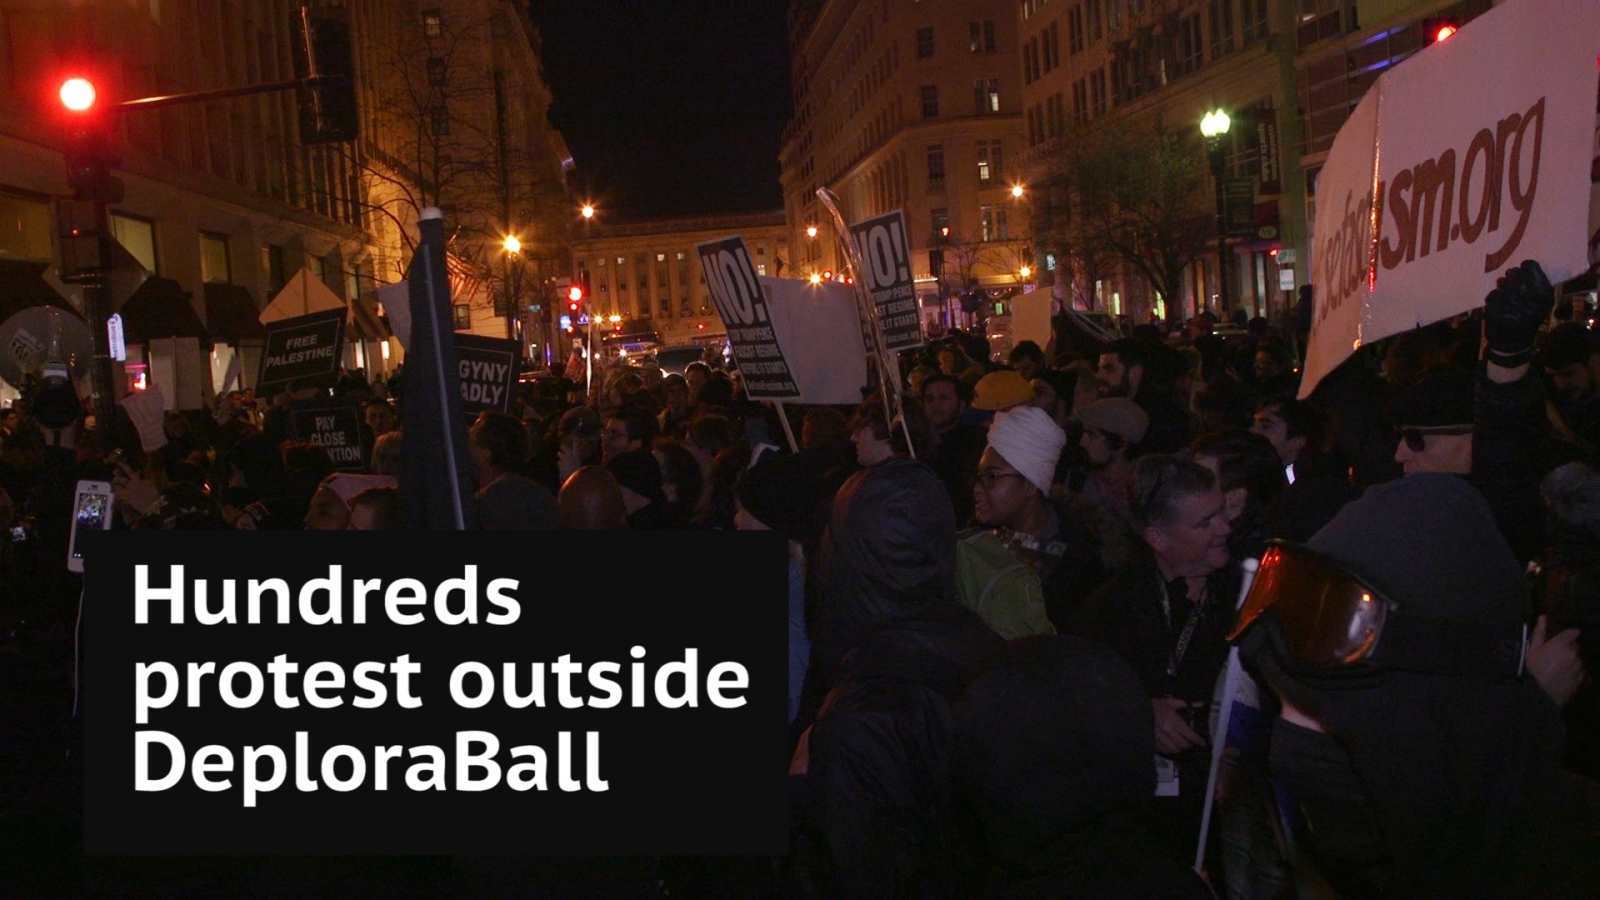 Hundreds protest outside alt-right DeploraBall event in Washington DC